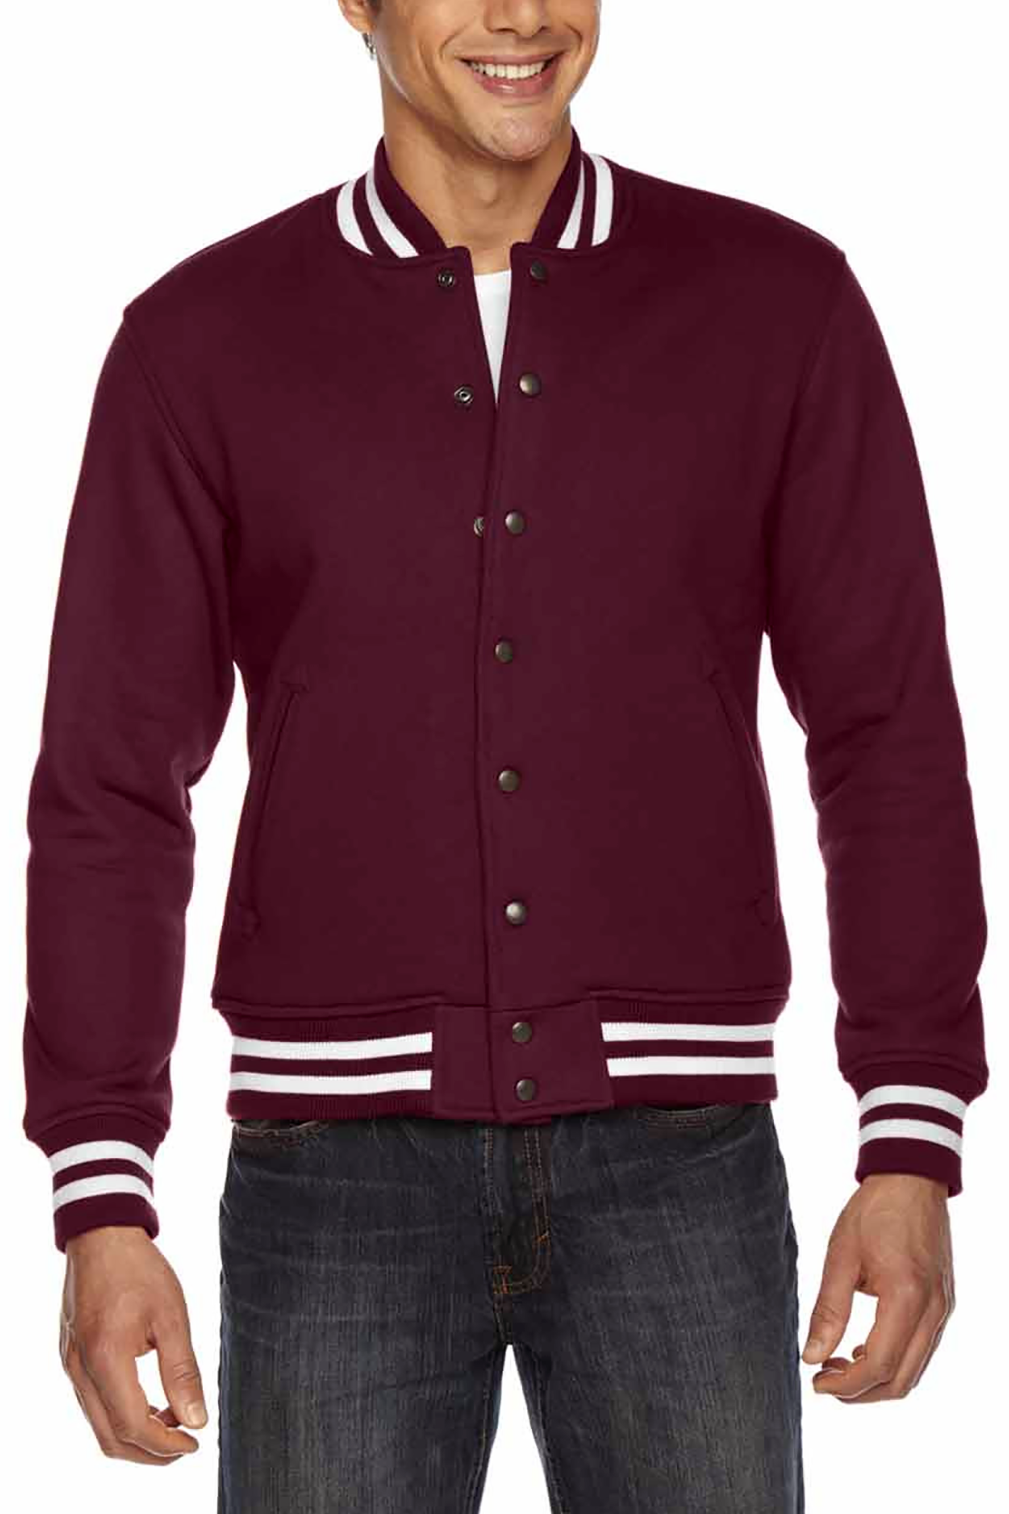 Cleveland City of Champions - Varsity Club Jacket - Whiskey Island Clothing